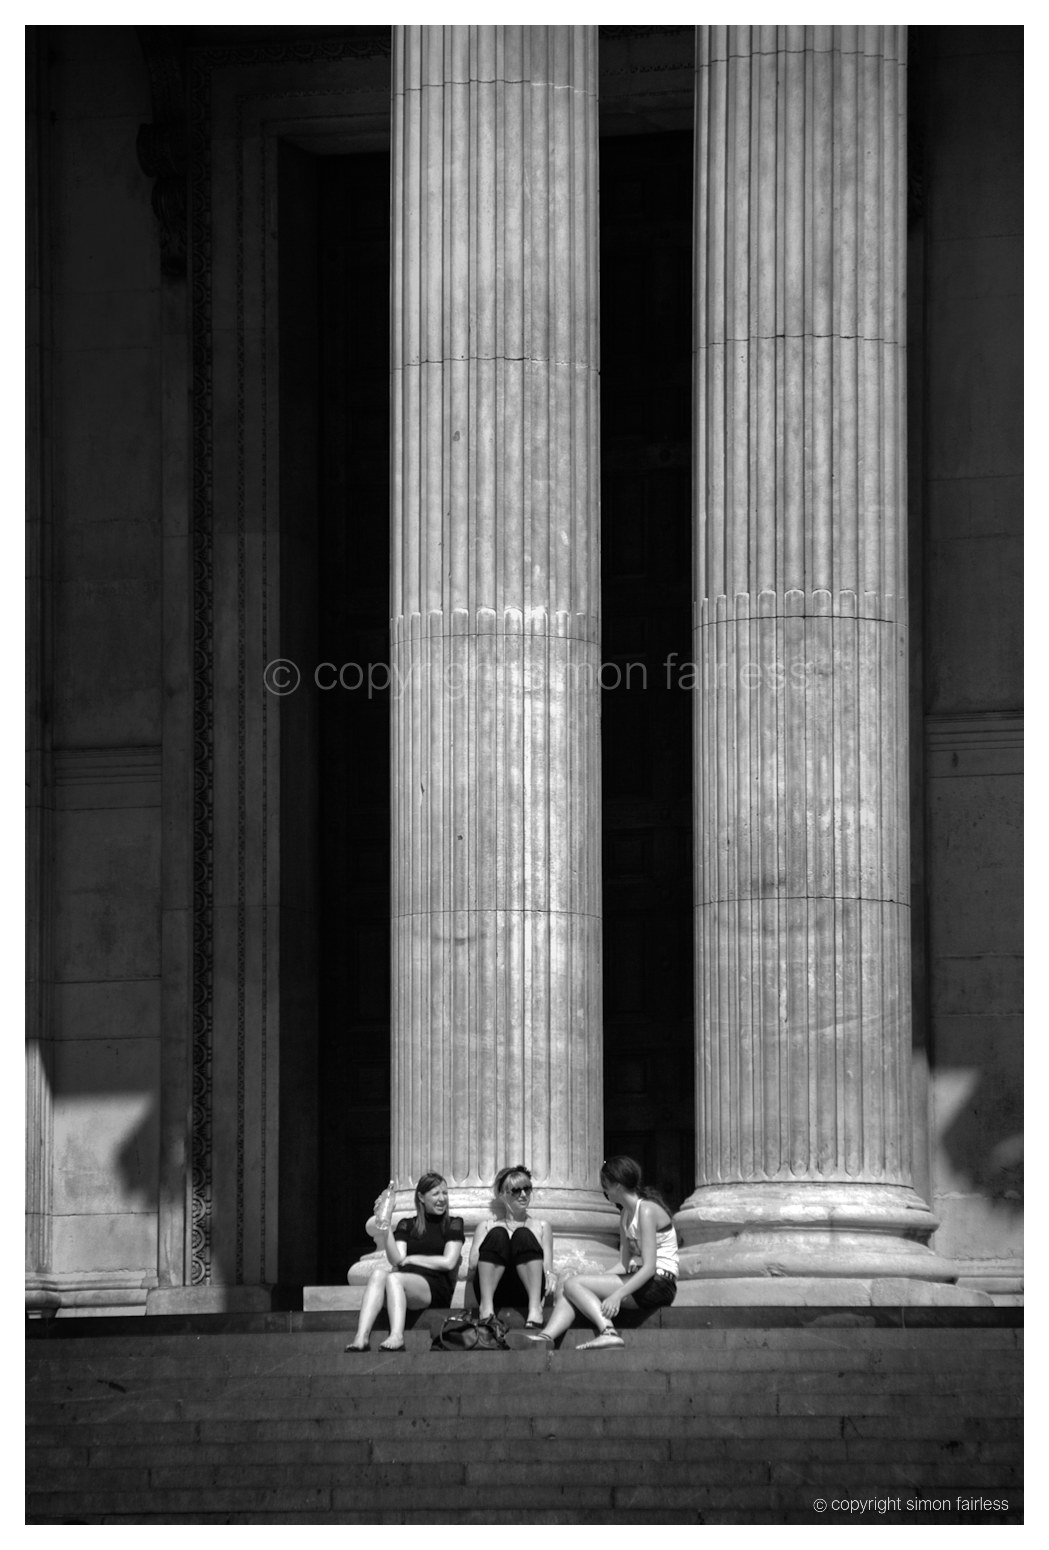 London Images - St Pauls